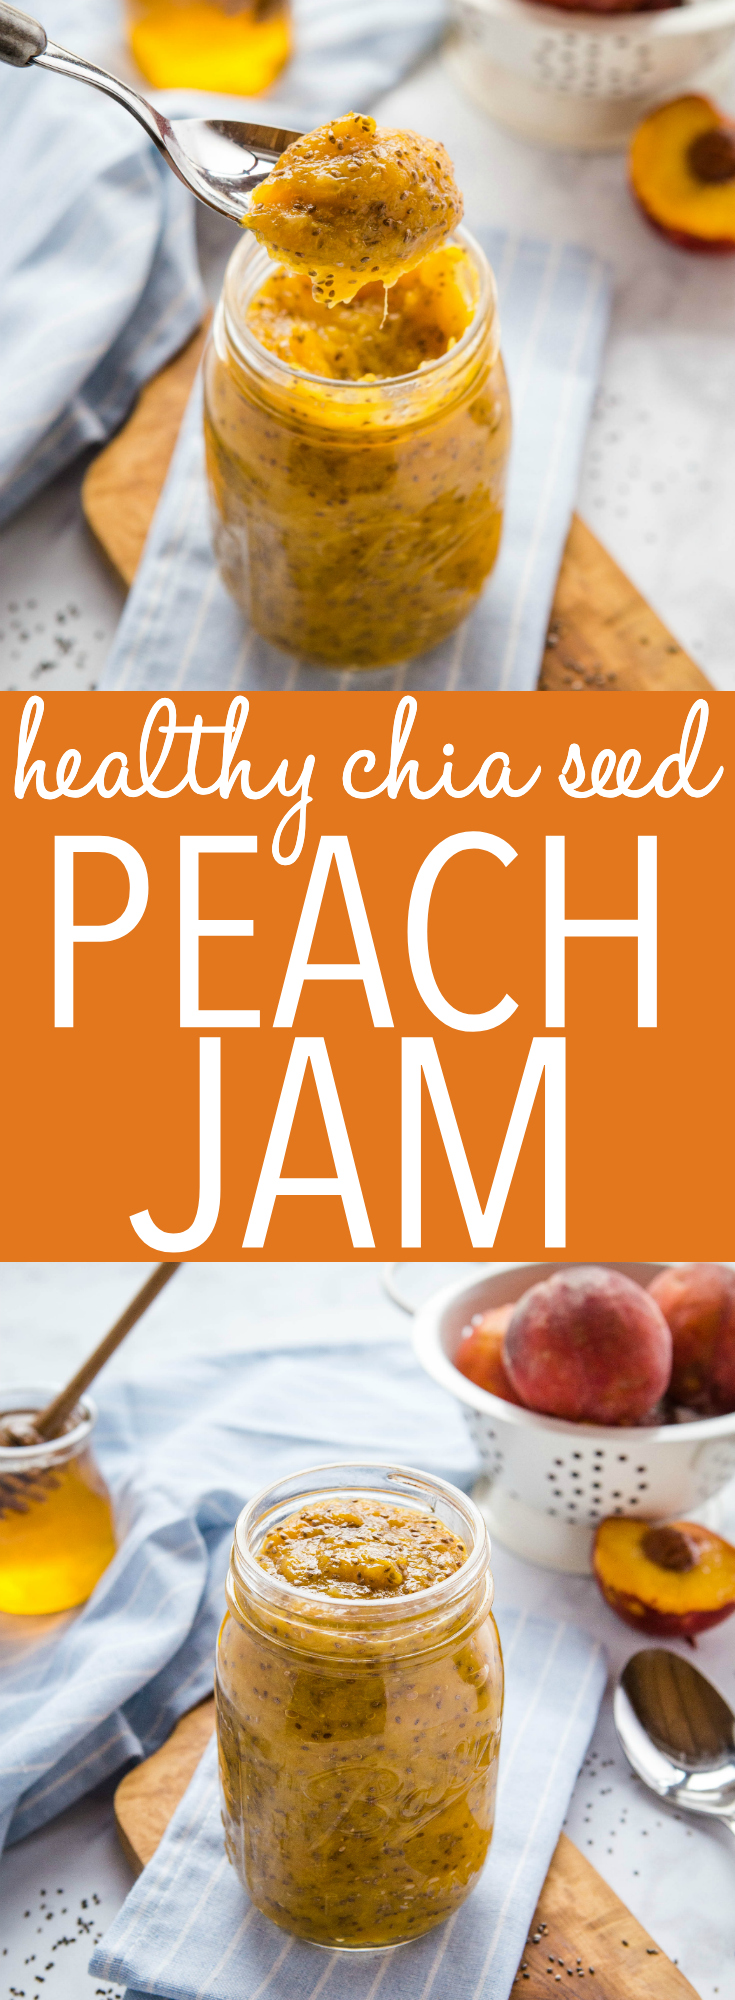 Healthy Chia Seed Peach Jam Recipe Pinterest